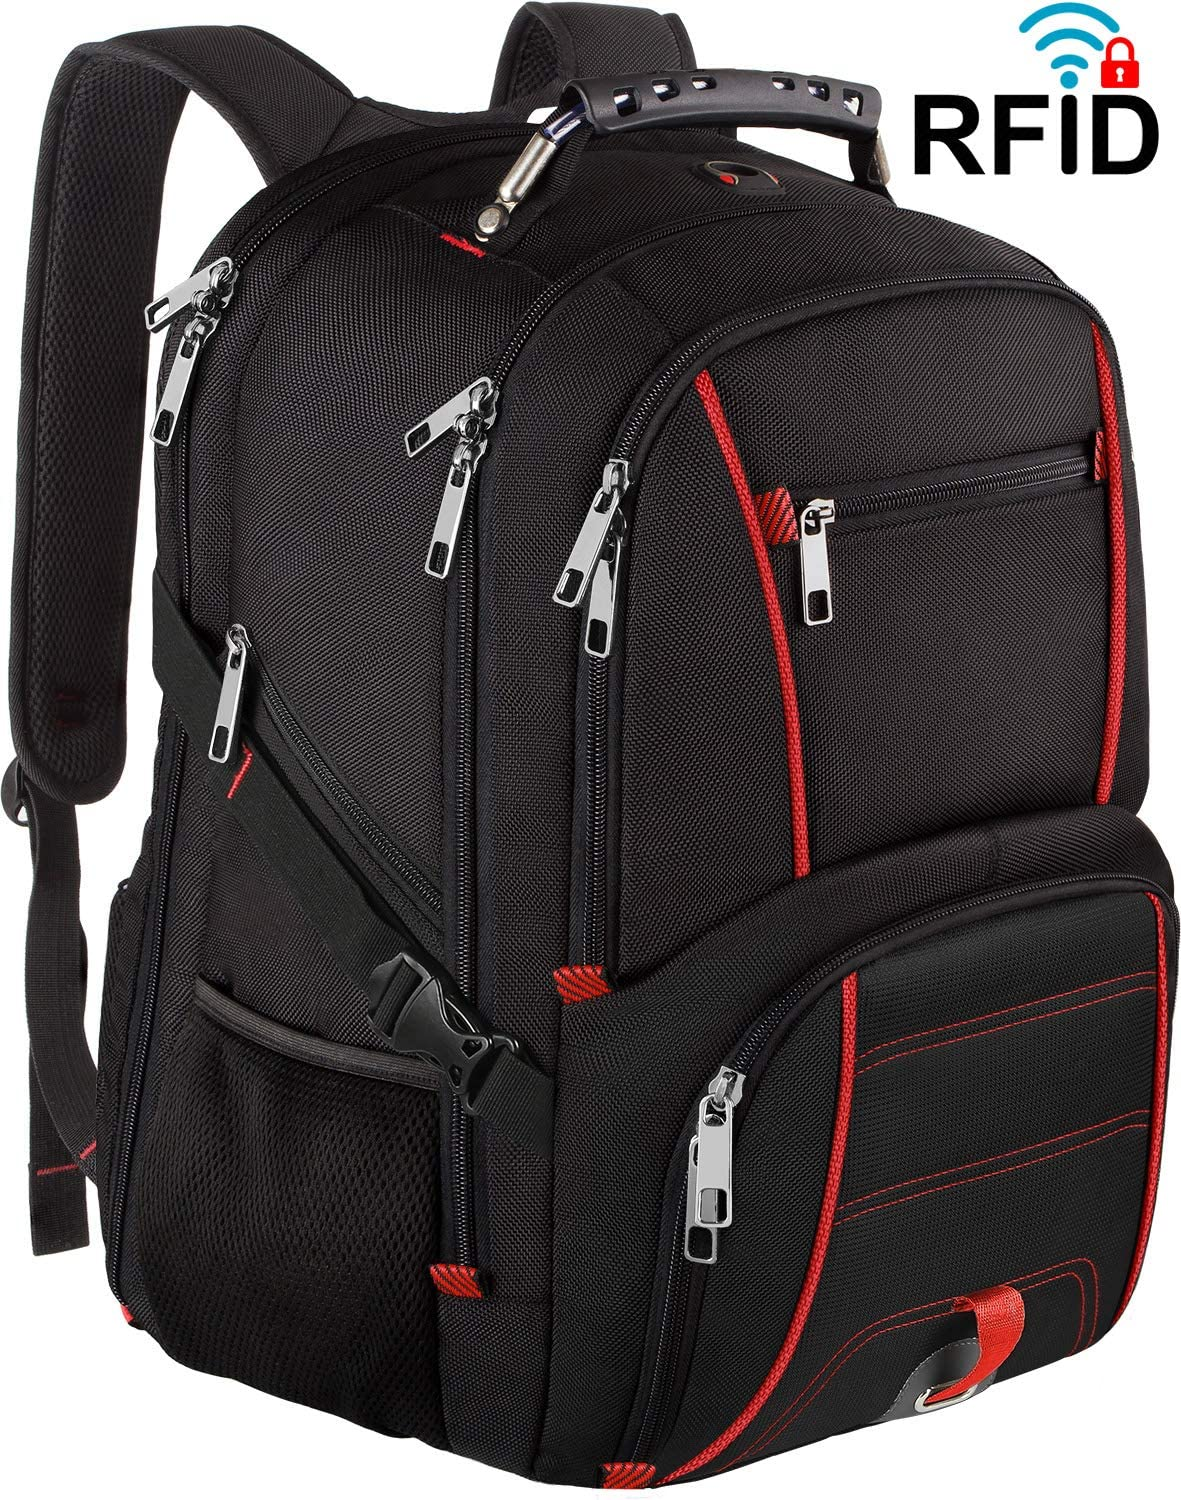 Extra Large Laptop Backpack,Travel Big Capacity RFID TSA Friendly Durable Men Women Computer Backpack with USB Charging Port Headphone Hole,College High School Bookbag Fit 17.3 Inch Laptop&Notebook